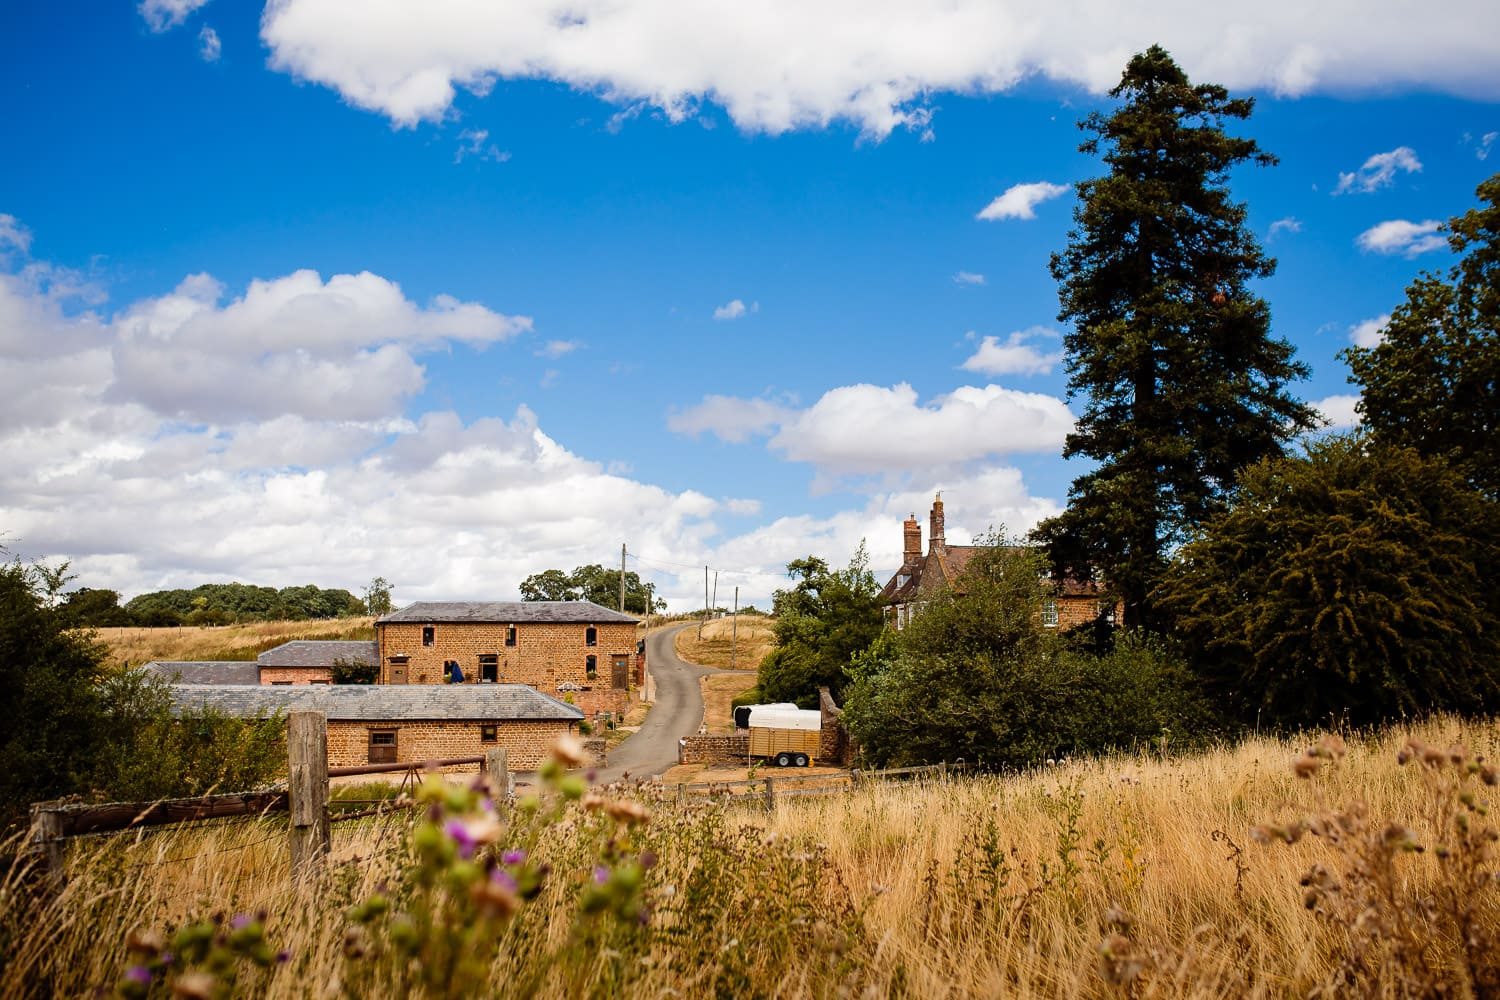 The Granary at Fawsley Wedding venue by chapter one photography